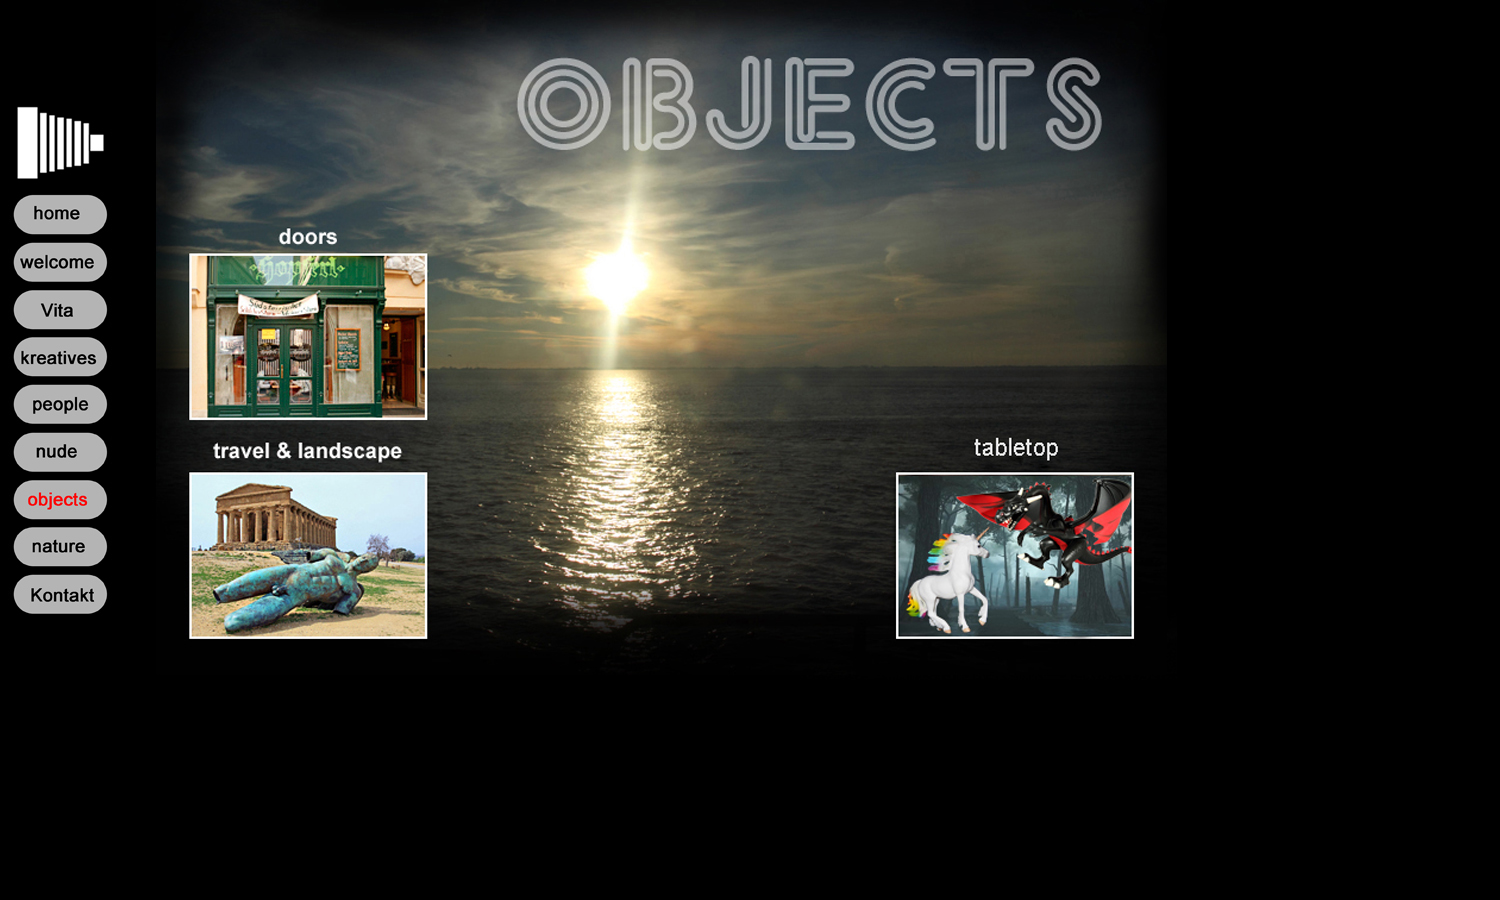 Seite-objects